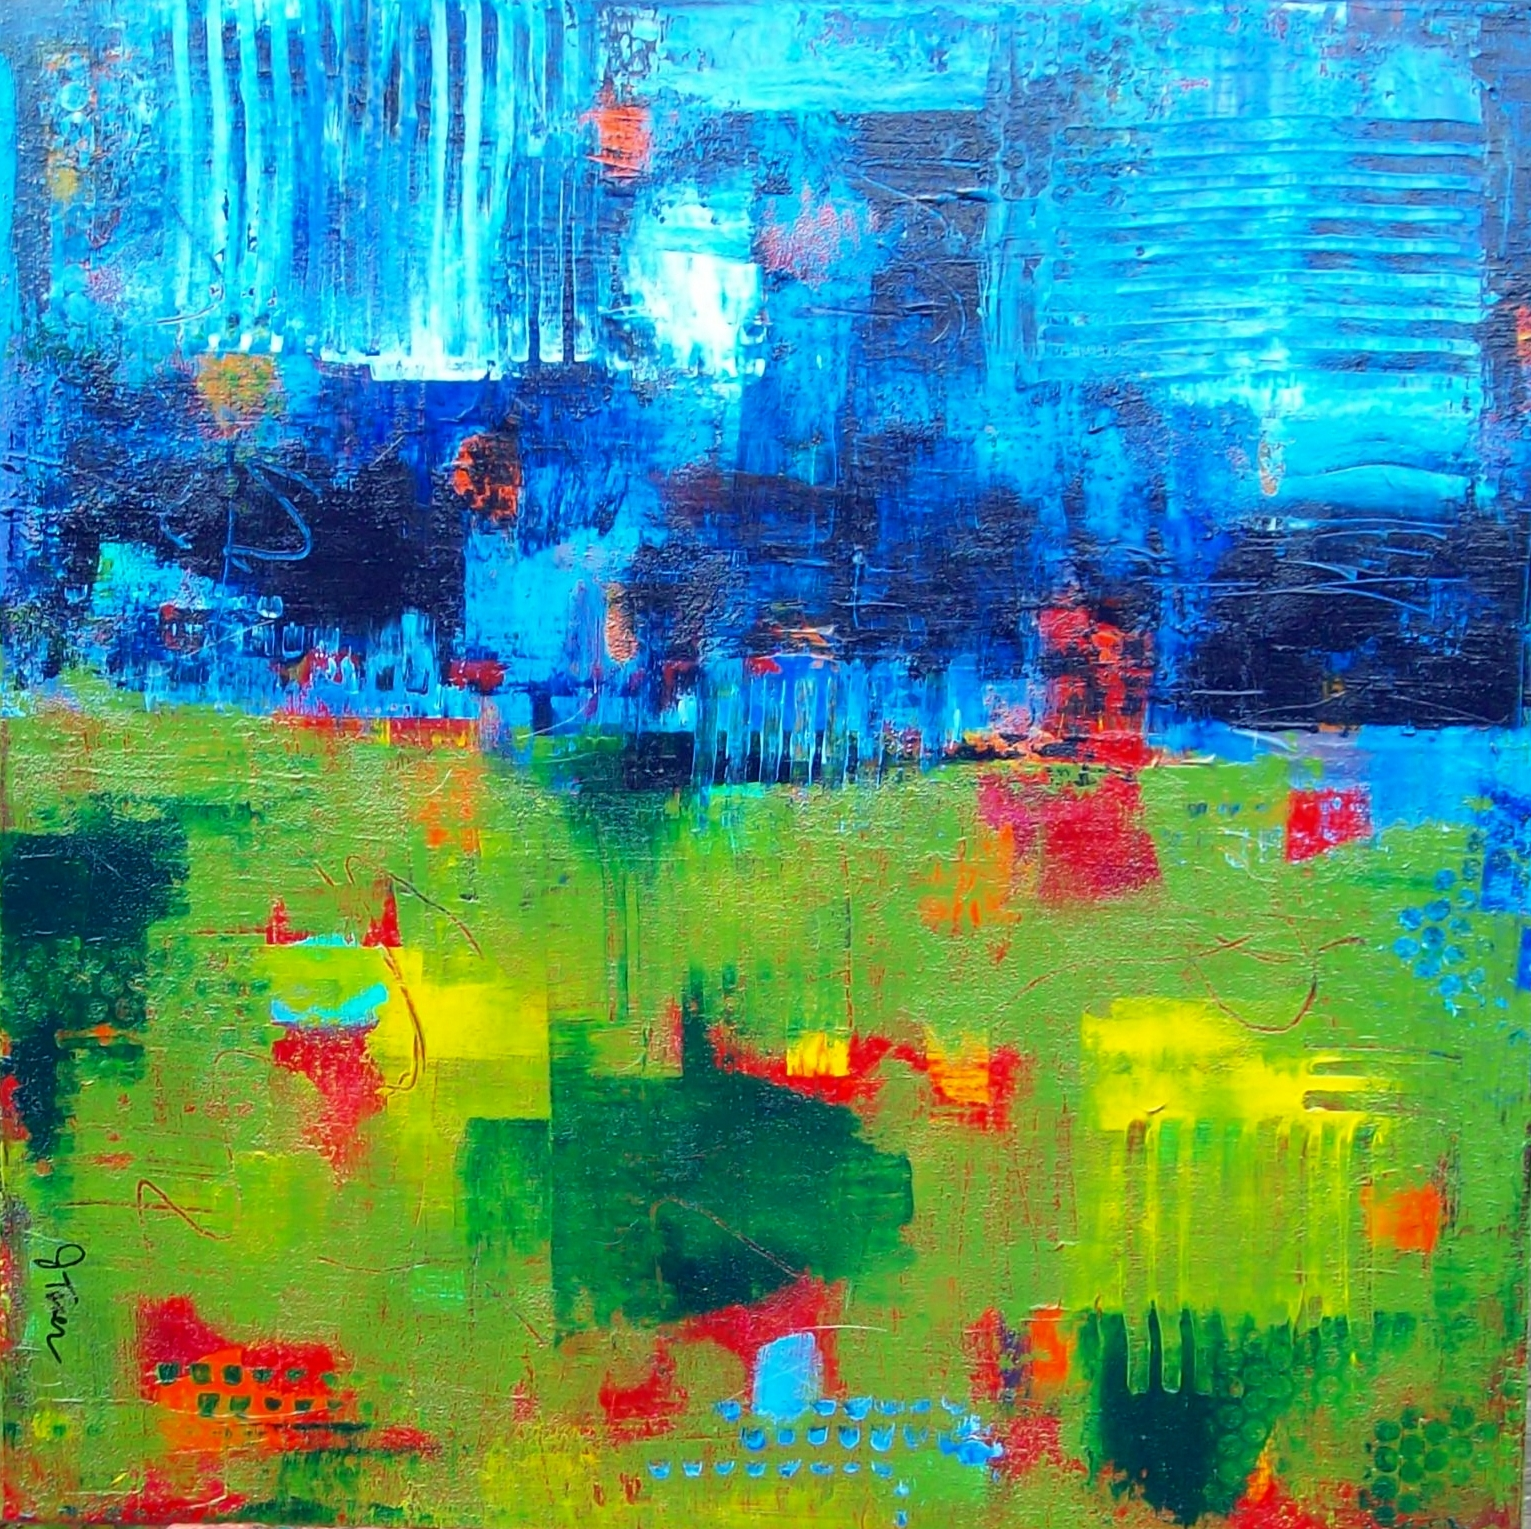 Blue over Green (2013)